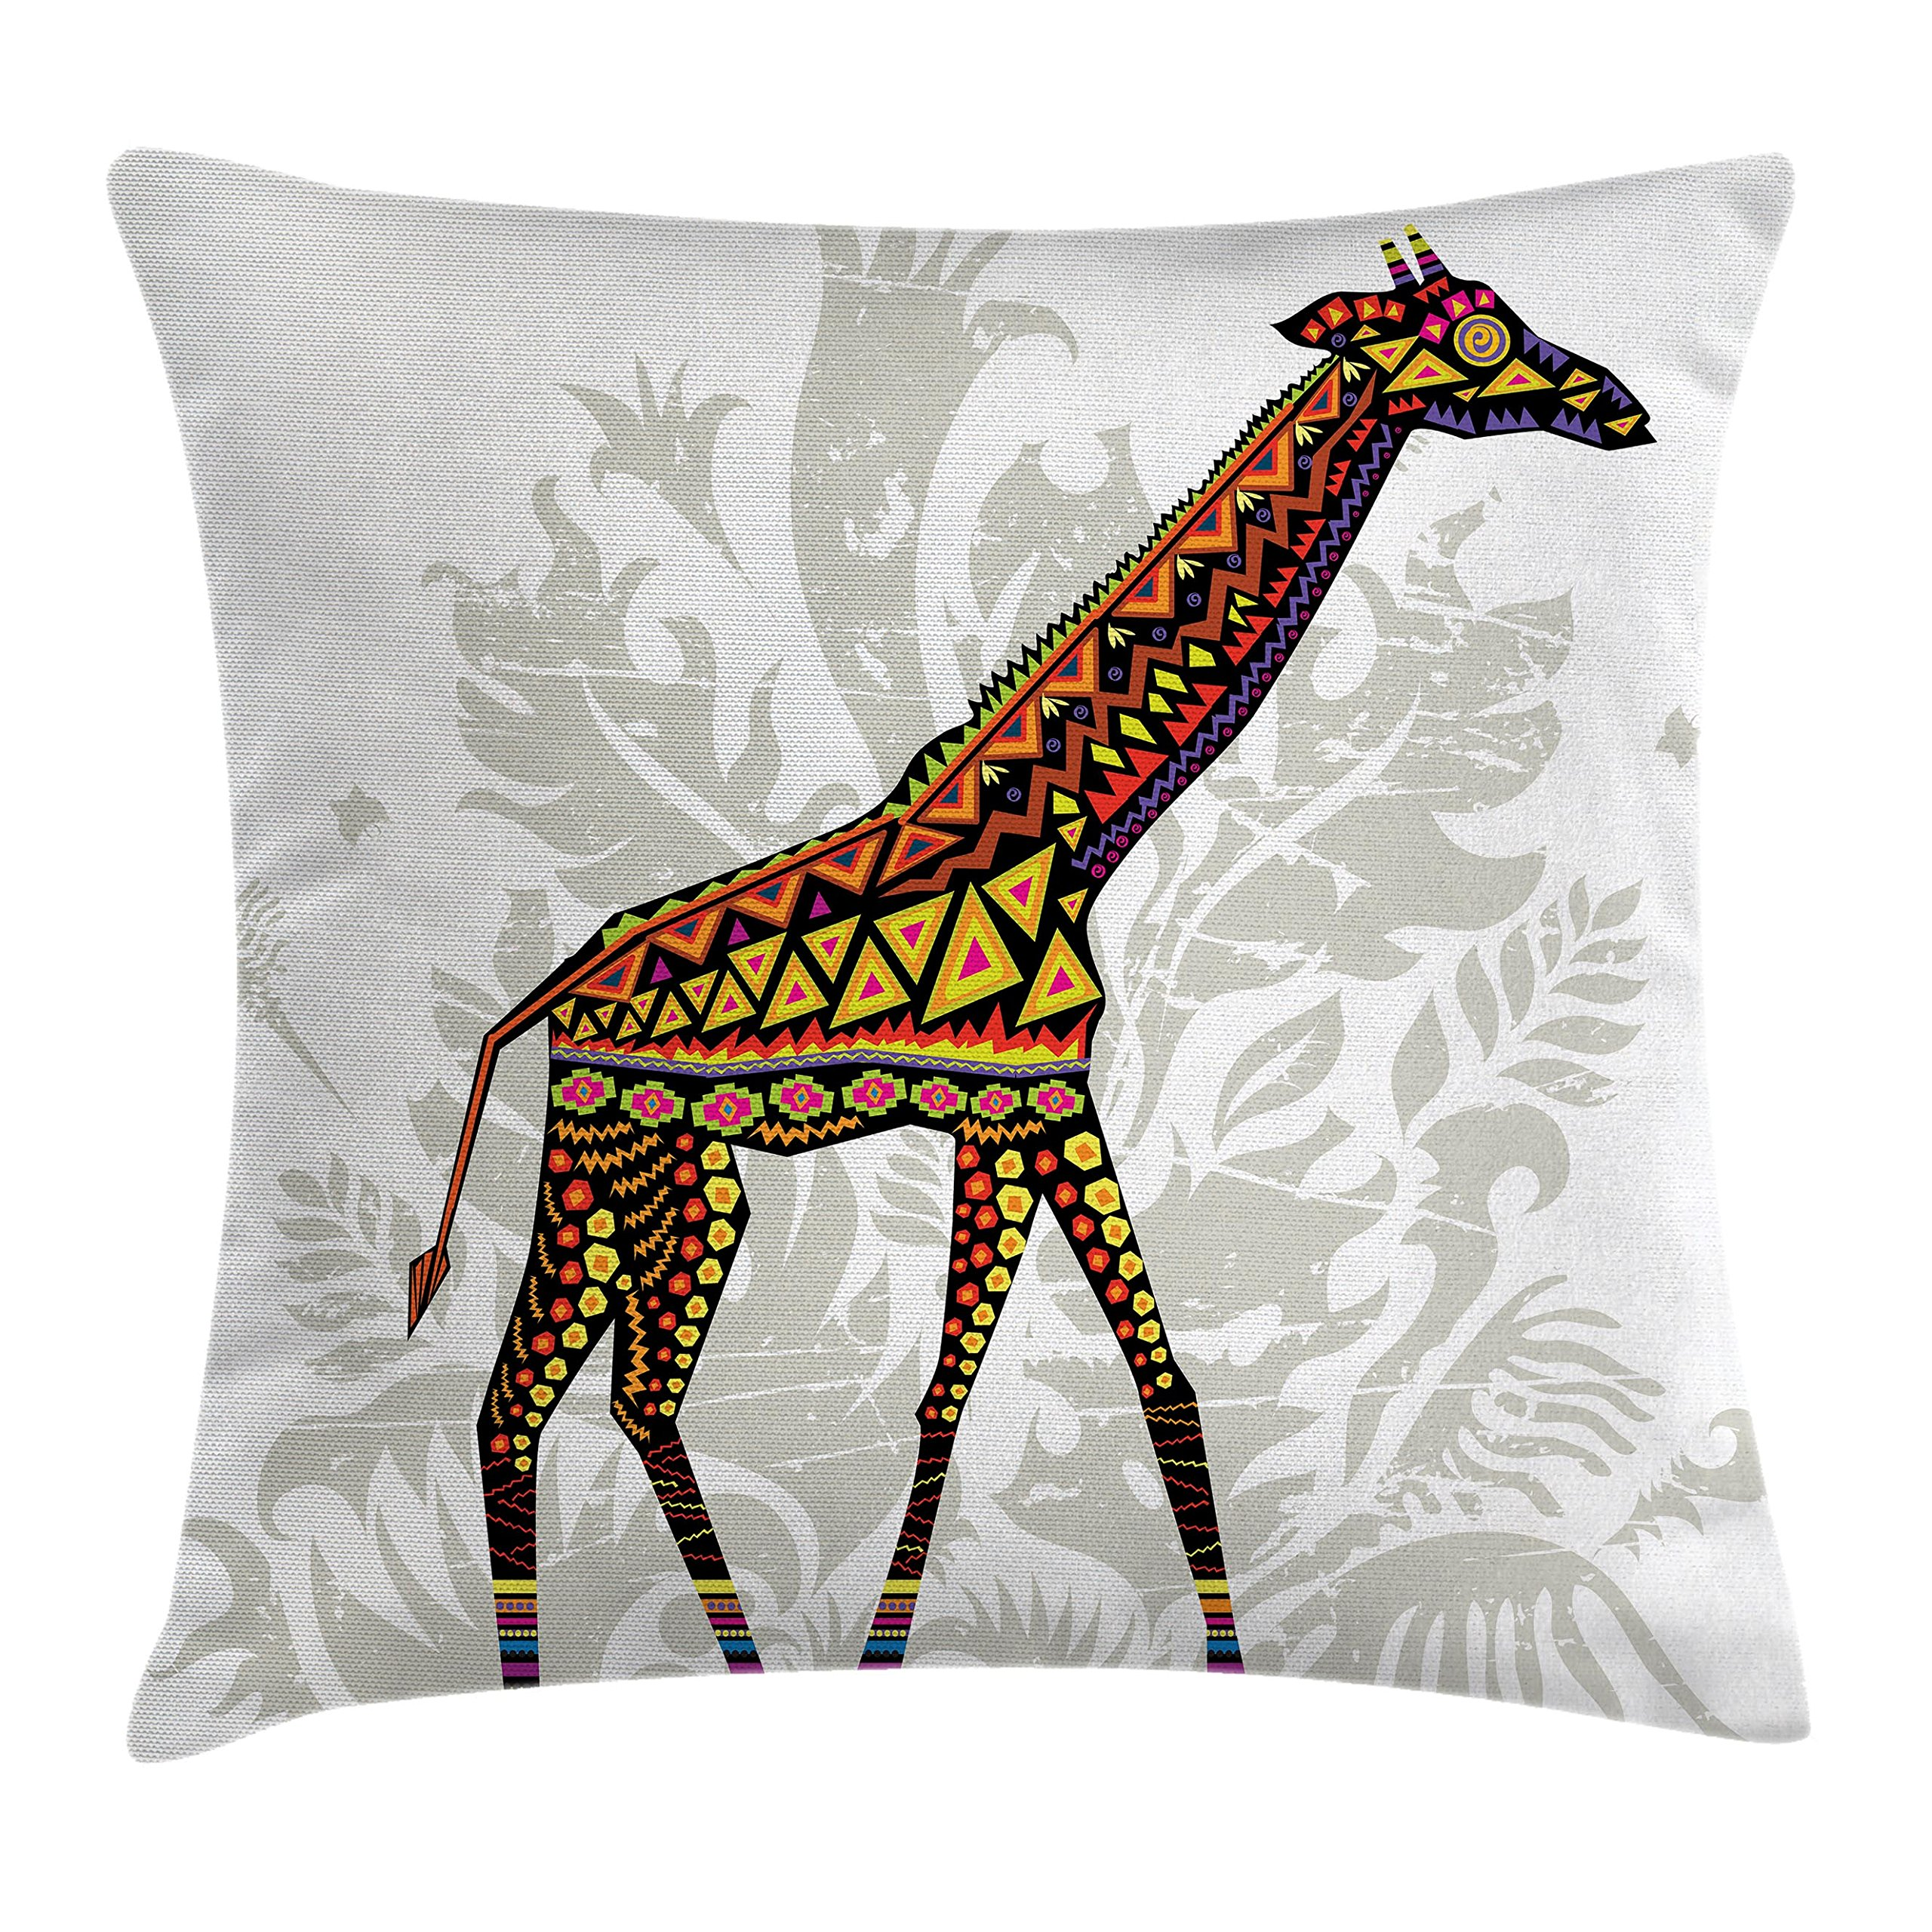 Ambesonne Batik Decor Throw Pillow Cushion Cover, African Savannah Animal Giraffe with Ethnic Ornament Patterns on Body Creature Print, Decorative Square Accent Pillow Case, 16 X 16 Inches, Multi